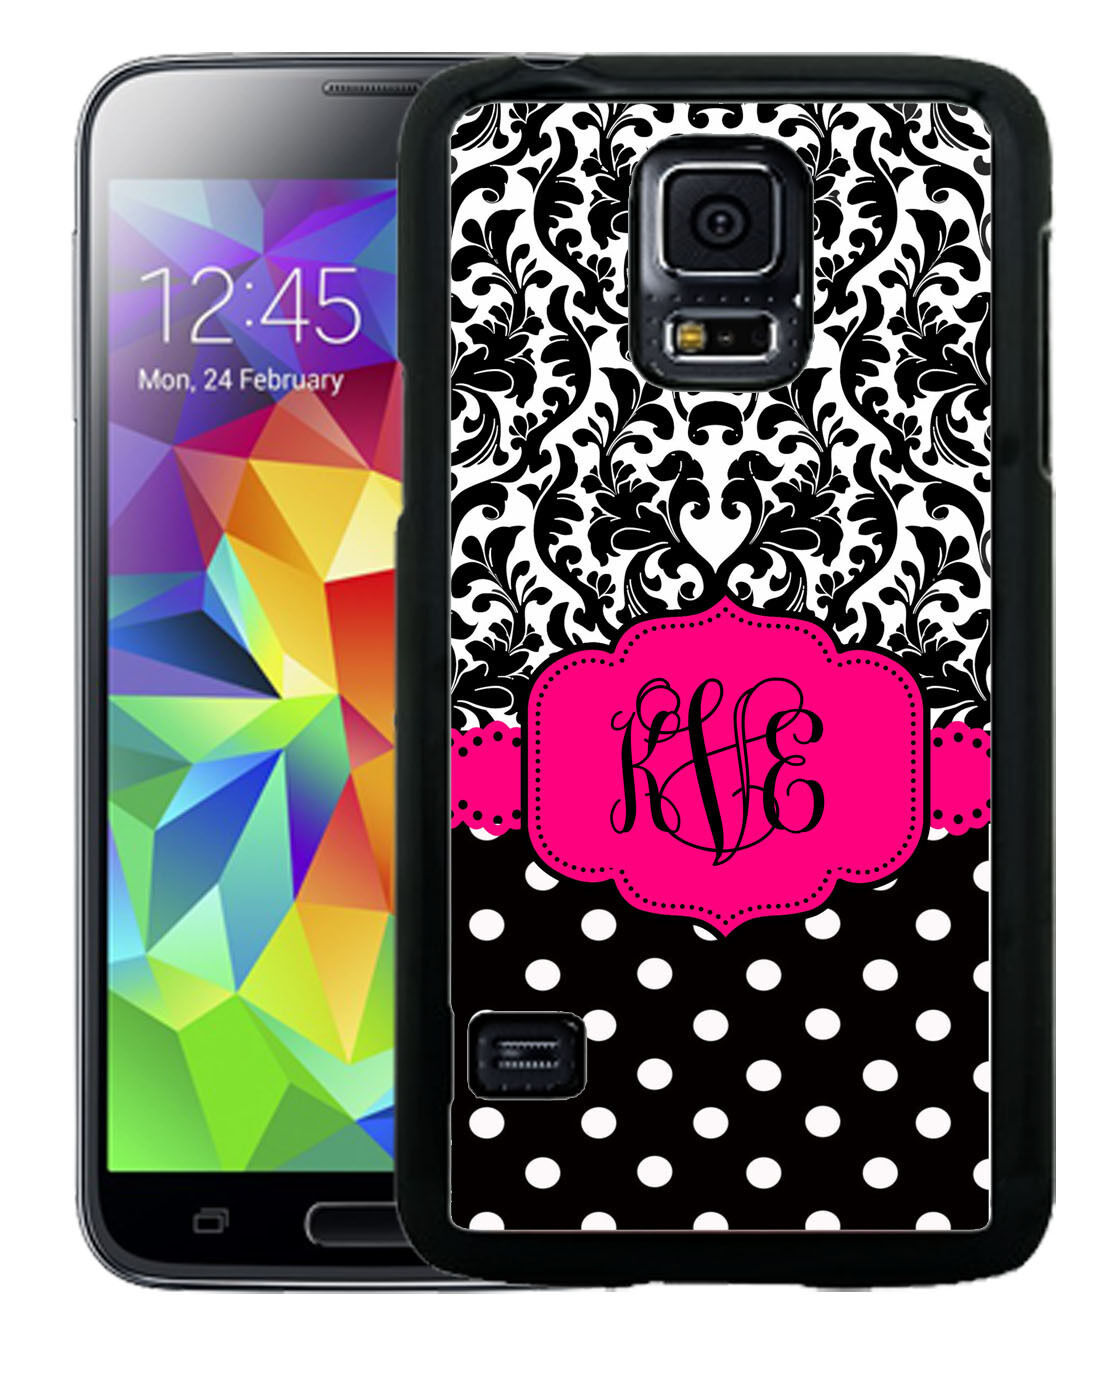 MONOGRAMMED RUBBER CASE FOR SAMSUNG S8 S7 S6 S5 EDGE PLUS HOT PINK BLACK DAMASK